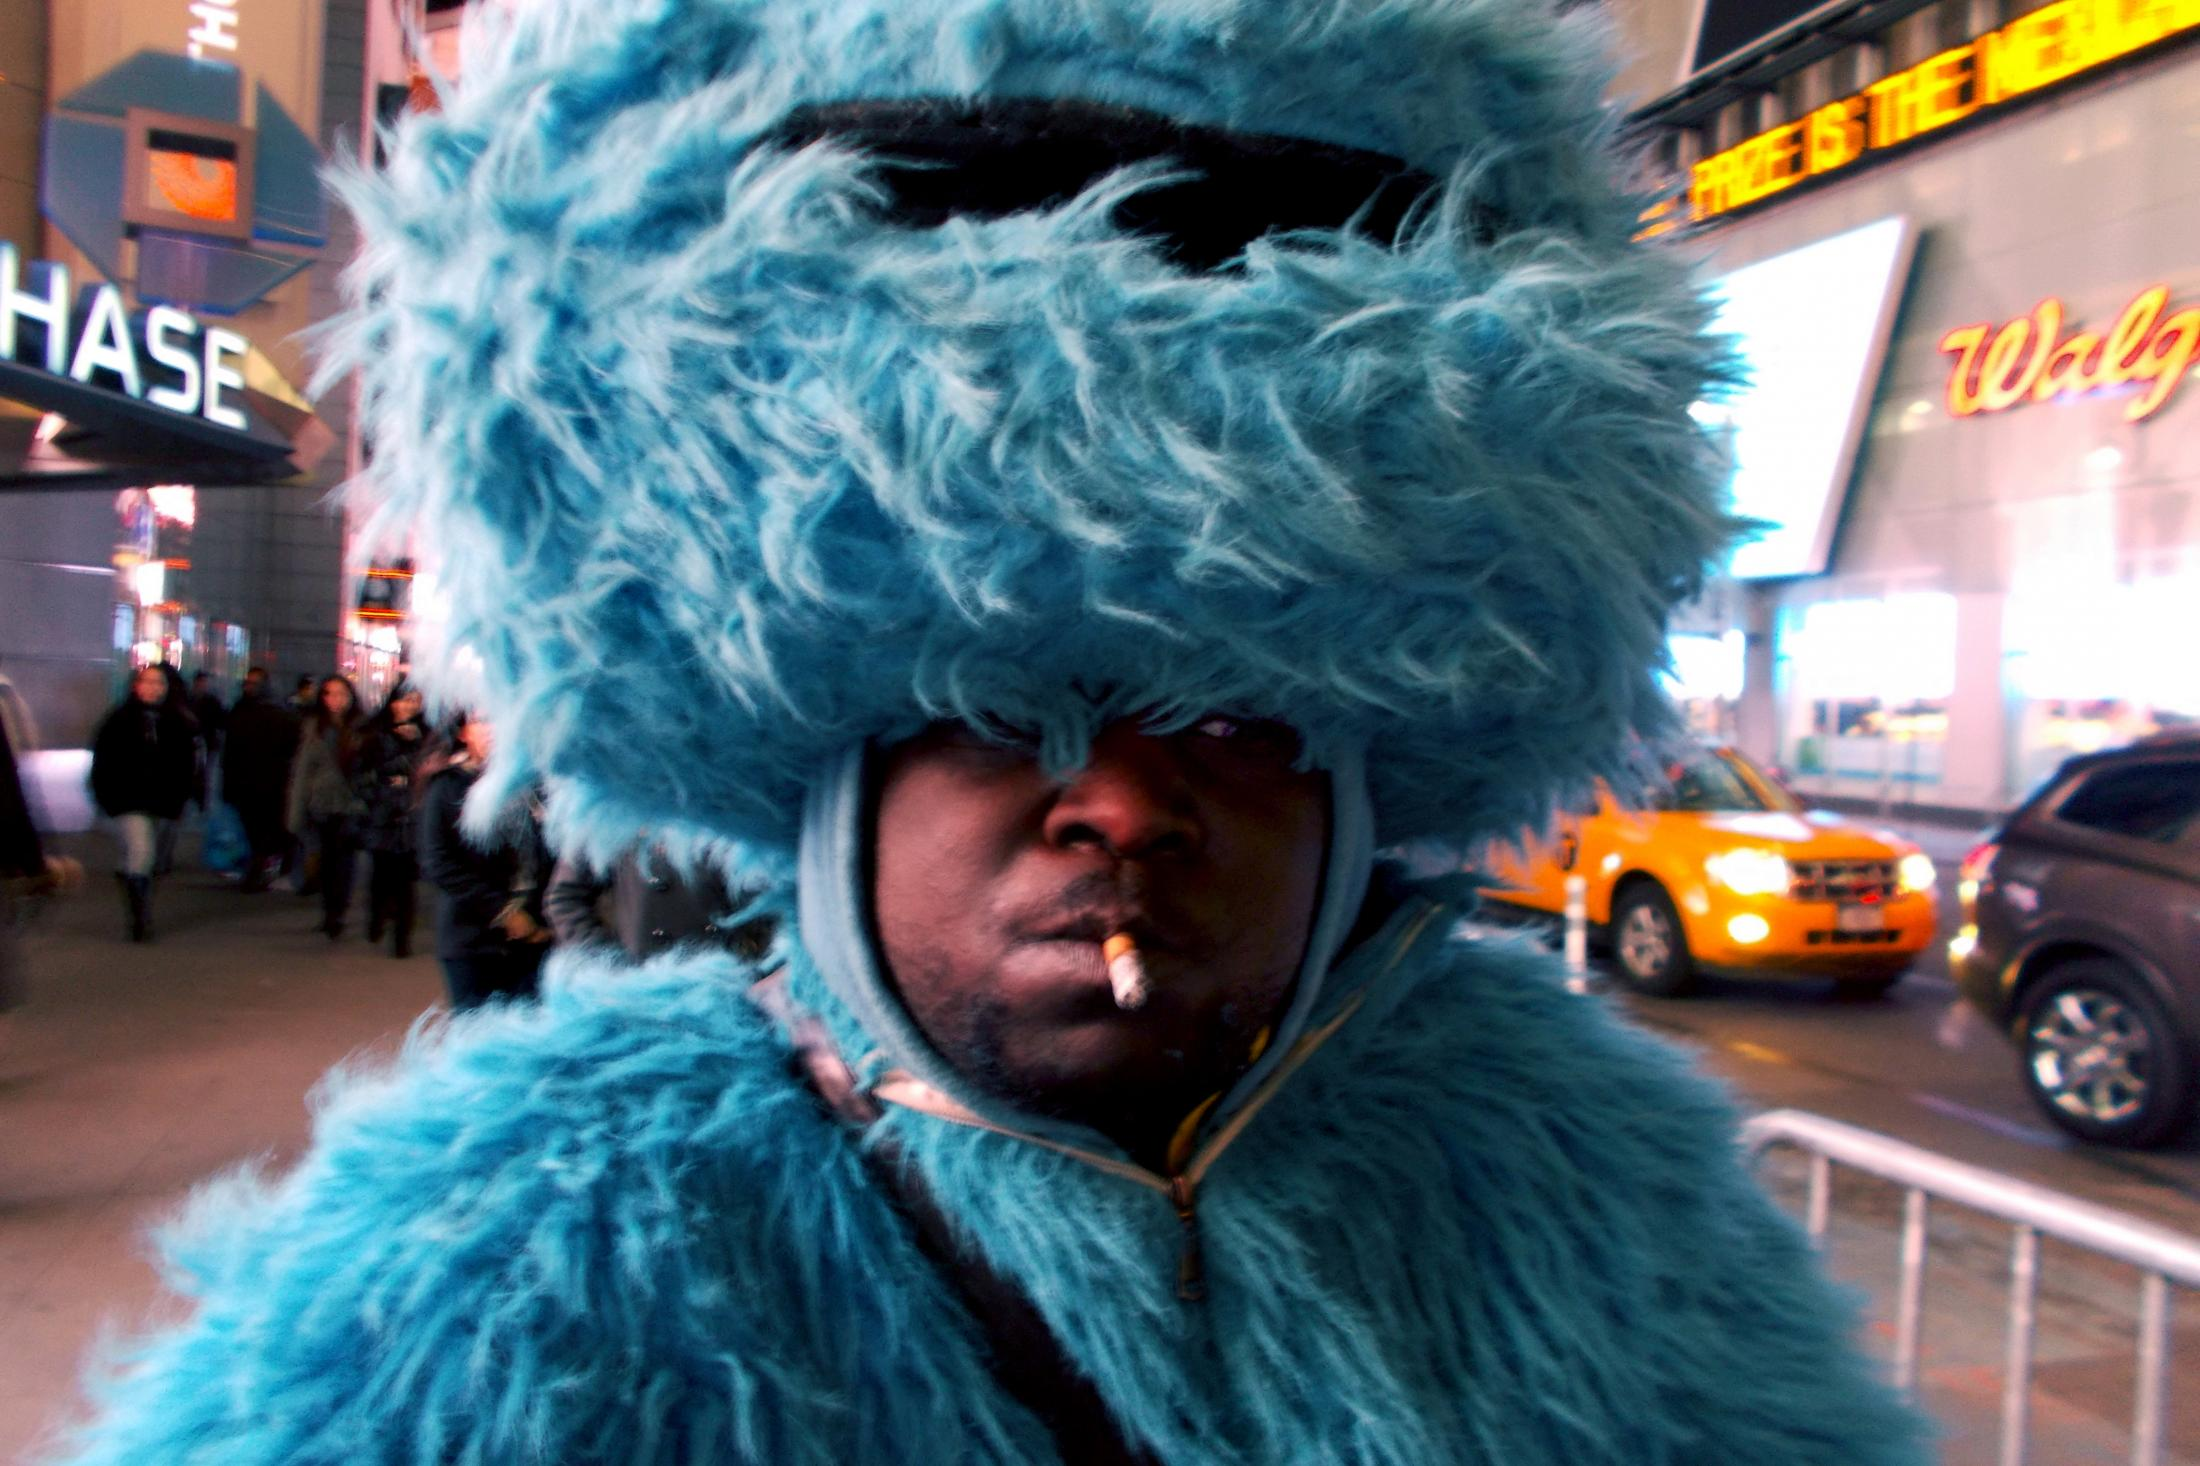 New York, UNITED STATES ,Immigrant dressed up as Cookie Monster ask for donations after posing for pictures in Times Square. 2013 Joana Toro.